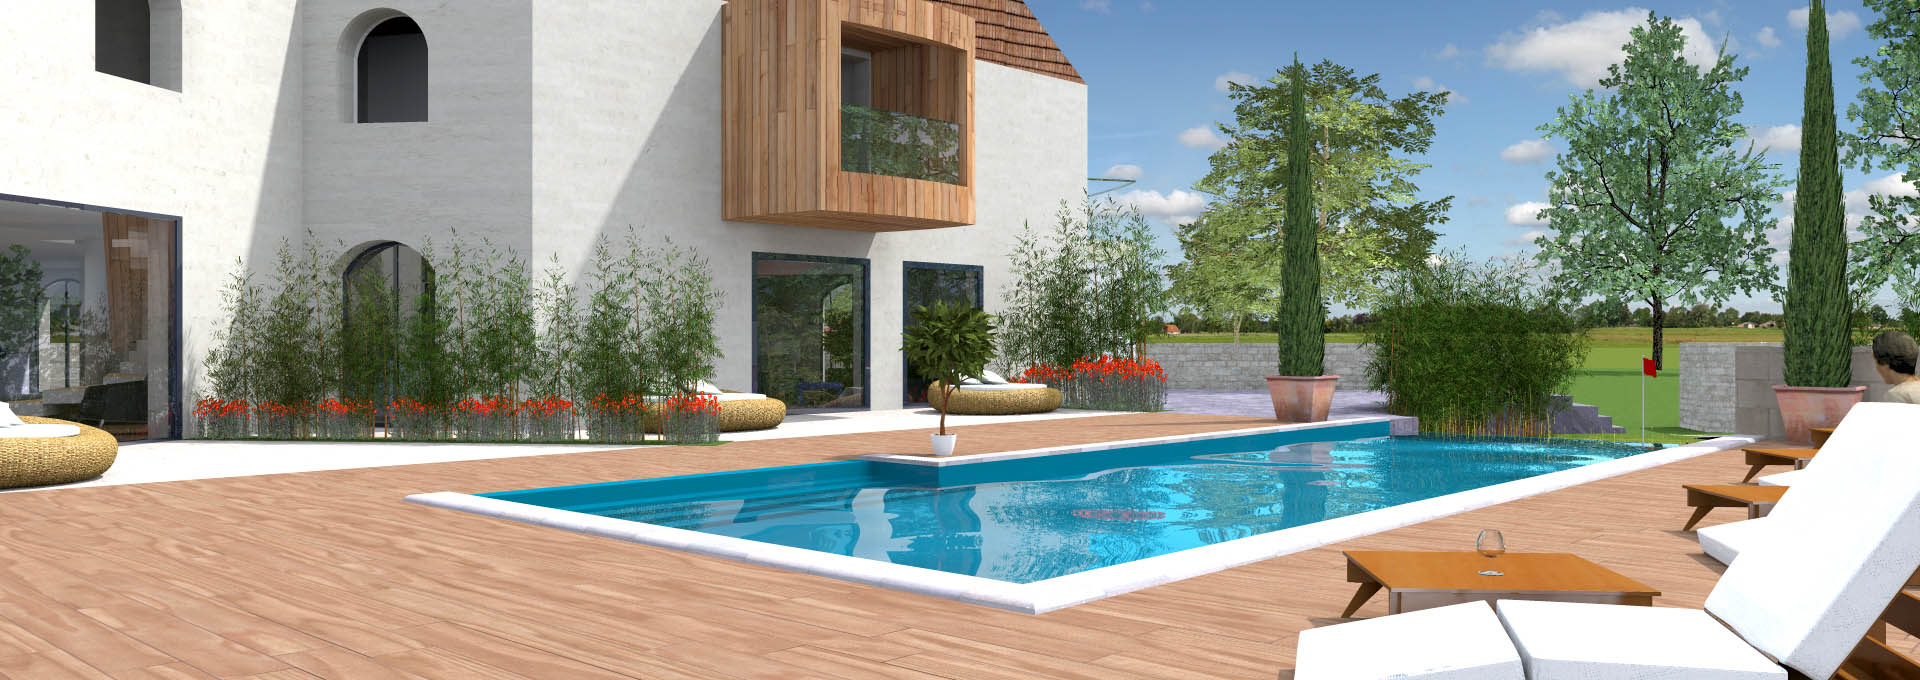 Amnagement spa extrieur fabulous salon piscine et jardin for Amenagement piscine exterieur